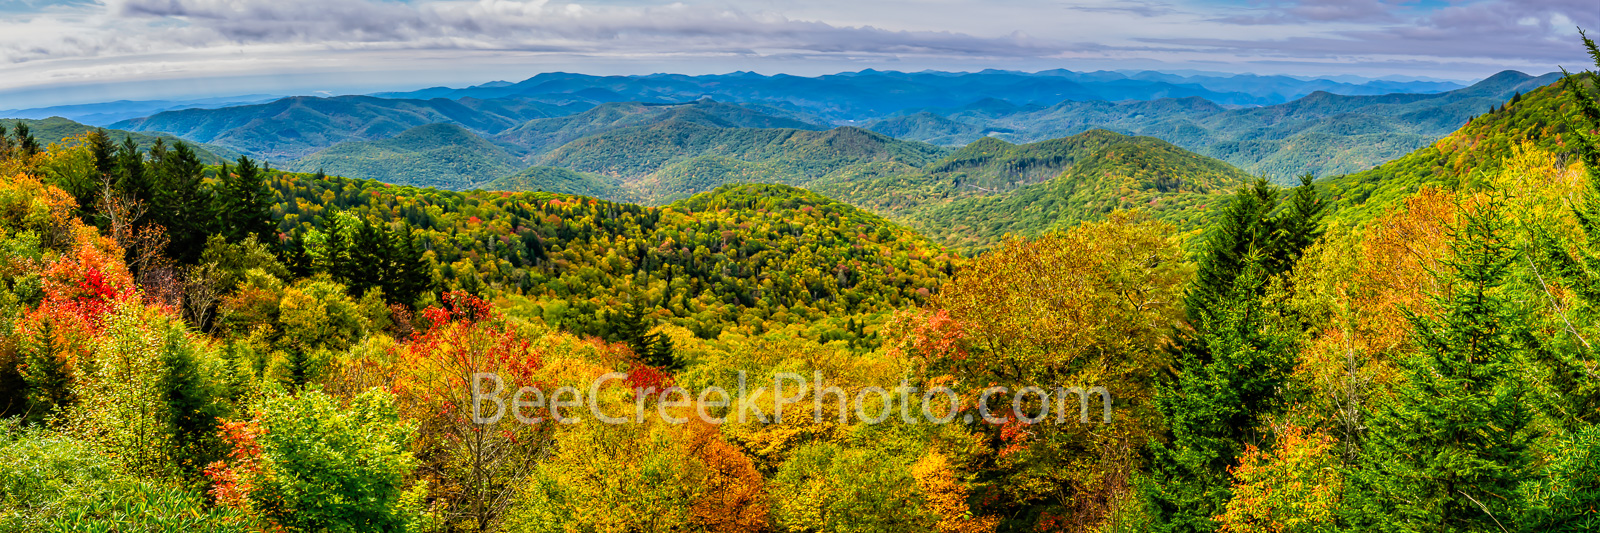 Blueridge Parkway, Fall, autumn, fall, smoky mountains, hillsides, yellow, reds, oranges, forest, pano, panorama, mountains, north carolina, nc, pano, panorama, , photo